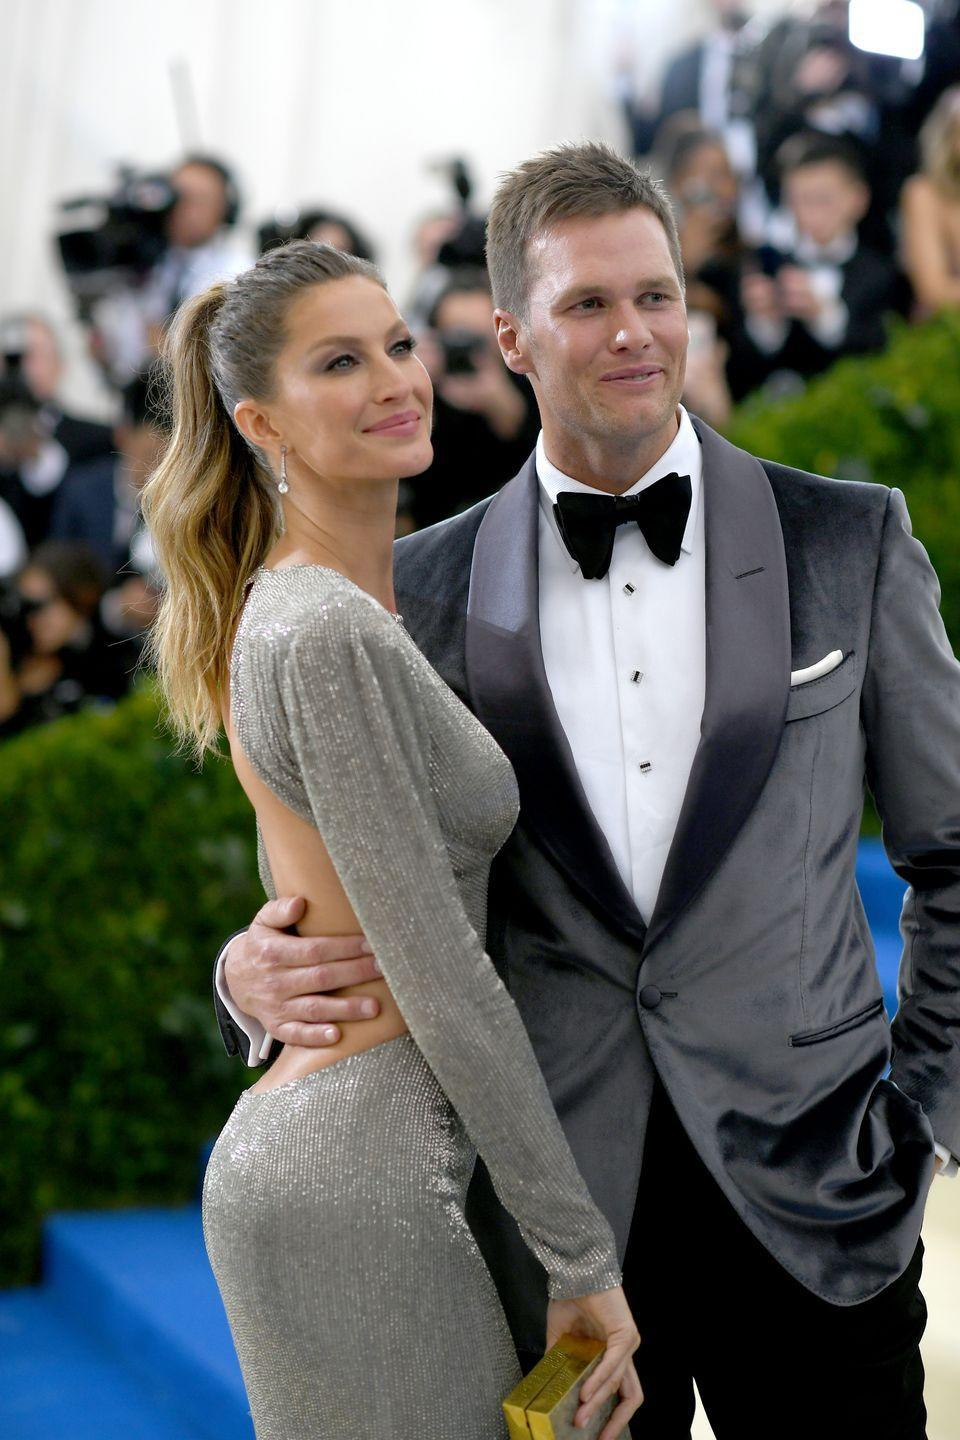 "<p>The model and quarterback met through a mutual friend who decided to play matchmaker.</p><p>""This friend told me he knew a girl version of me,"" the NFL player told <a href=""http://men.style.com/details/features/landing?id=content_10457"" rel=""nofollow noopener"" target=""_blank"" data-ylk=""slk:Details back in 2009"" class=""link rapid-noclick-resp""><em>Details</em> back in 2009</a>. </p><p>The sparks that flew were mutual. ""I knew Tom was the one straightaway. I could see it in his eyes that he was a man with integrity who believes in the same things I do,"" Bündchen told <a href=""http://www.vogue.co.uk/article/gisele-bundchen-british-vogue-cover-march-2015"" rel=""nofollow noopener"" target=""_blank"" data-ylk=""slk:Vogue"" class=""link rapid-noclick-resp""><em>Vogue</em></a>.</p>"